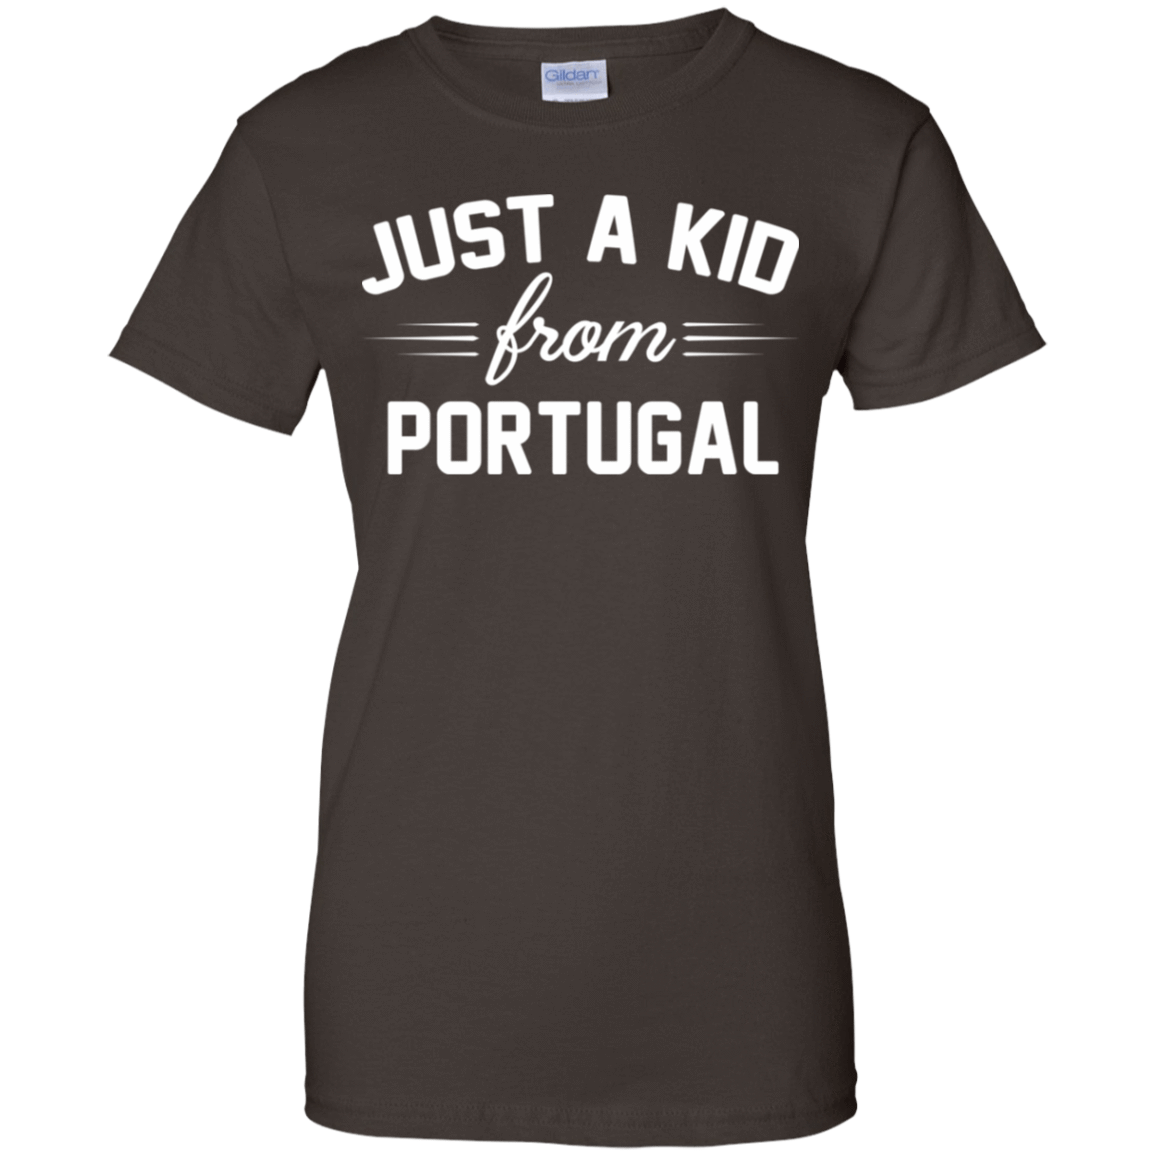 Just a Kid Store | Portugal T-Shirts, Hoodie, Tank 939-9251-72090886-44702 - Tee Ript